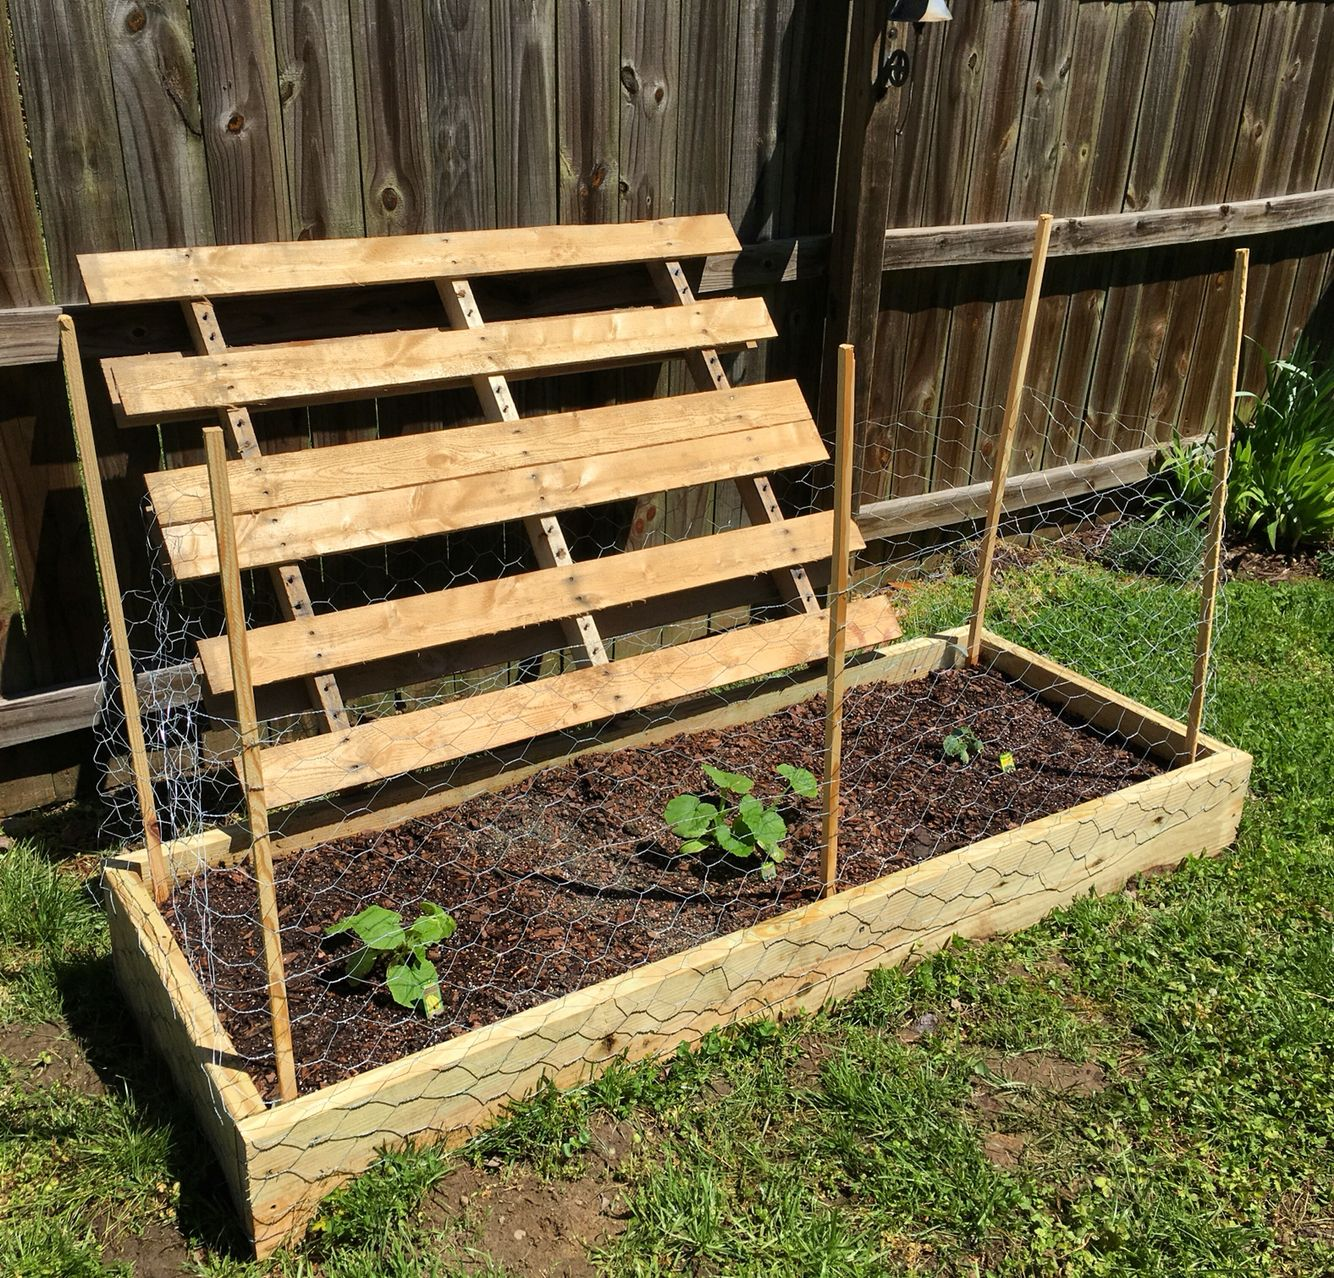 Growing Zucchini On A Trellis: Pallet Trellis For Squash And Zucchini. DIY Garden Box